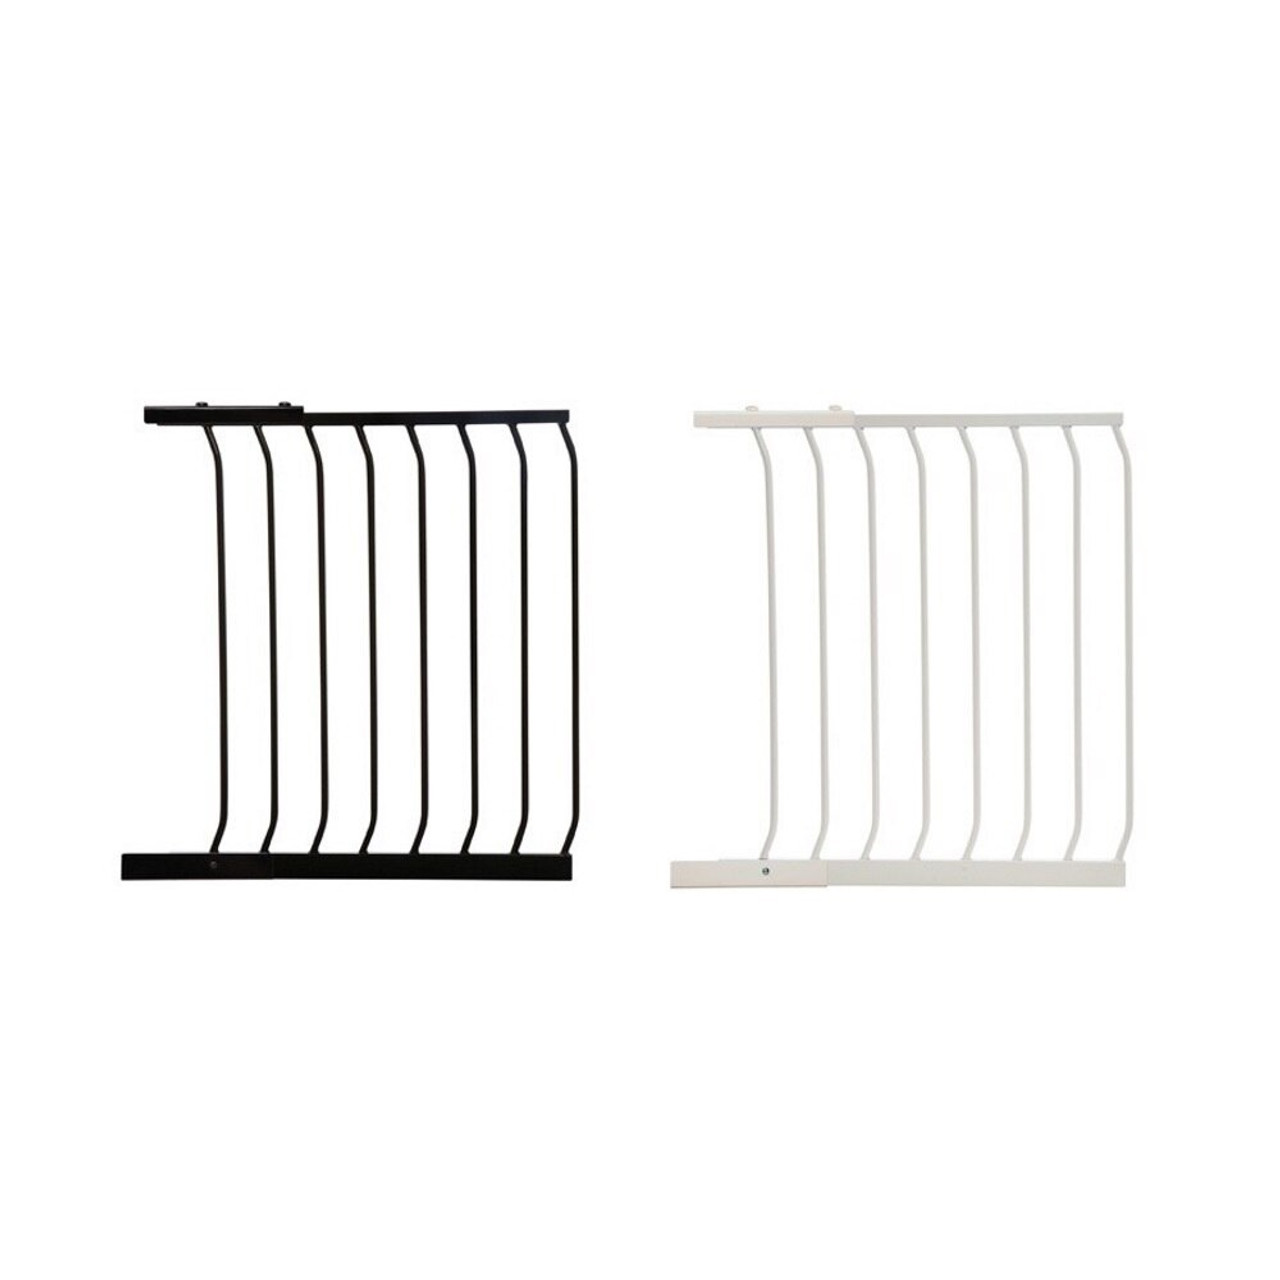 Dreambaby Chelsea 63cm Standard Gate Extension F834 at Baby Barn Discounts Dreambaby 63cm extension gate to suit the Standard Chelsea security gates.